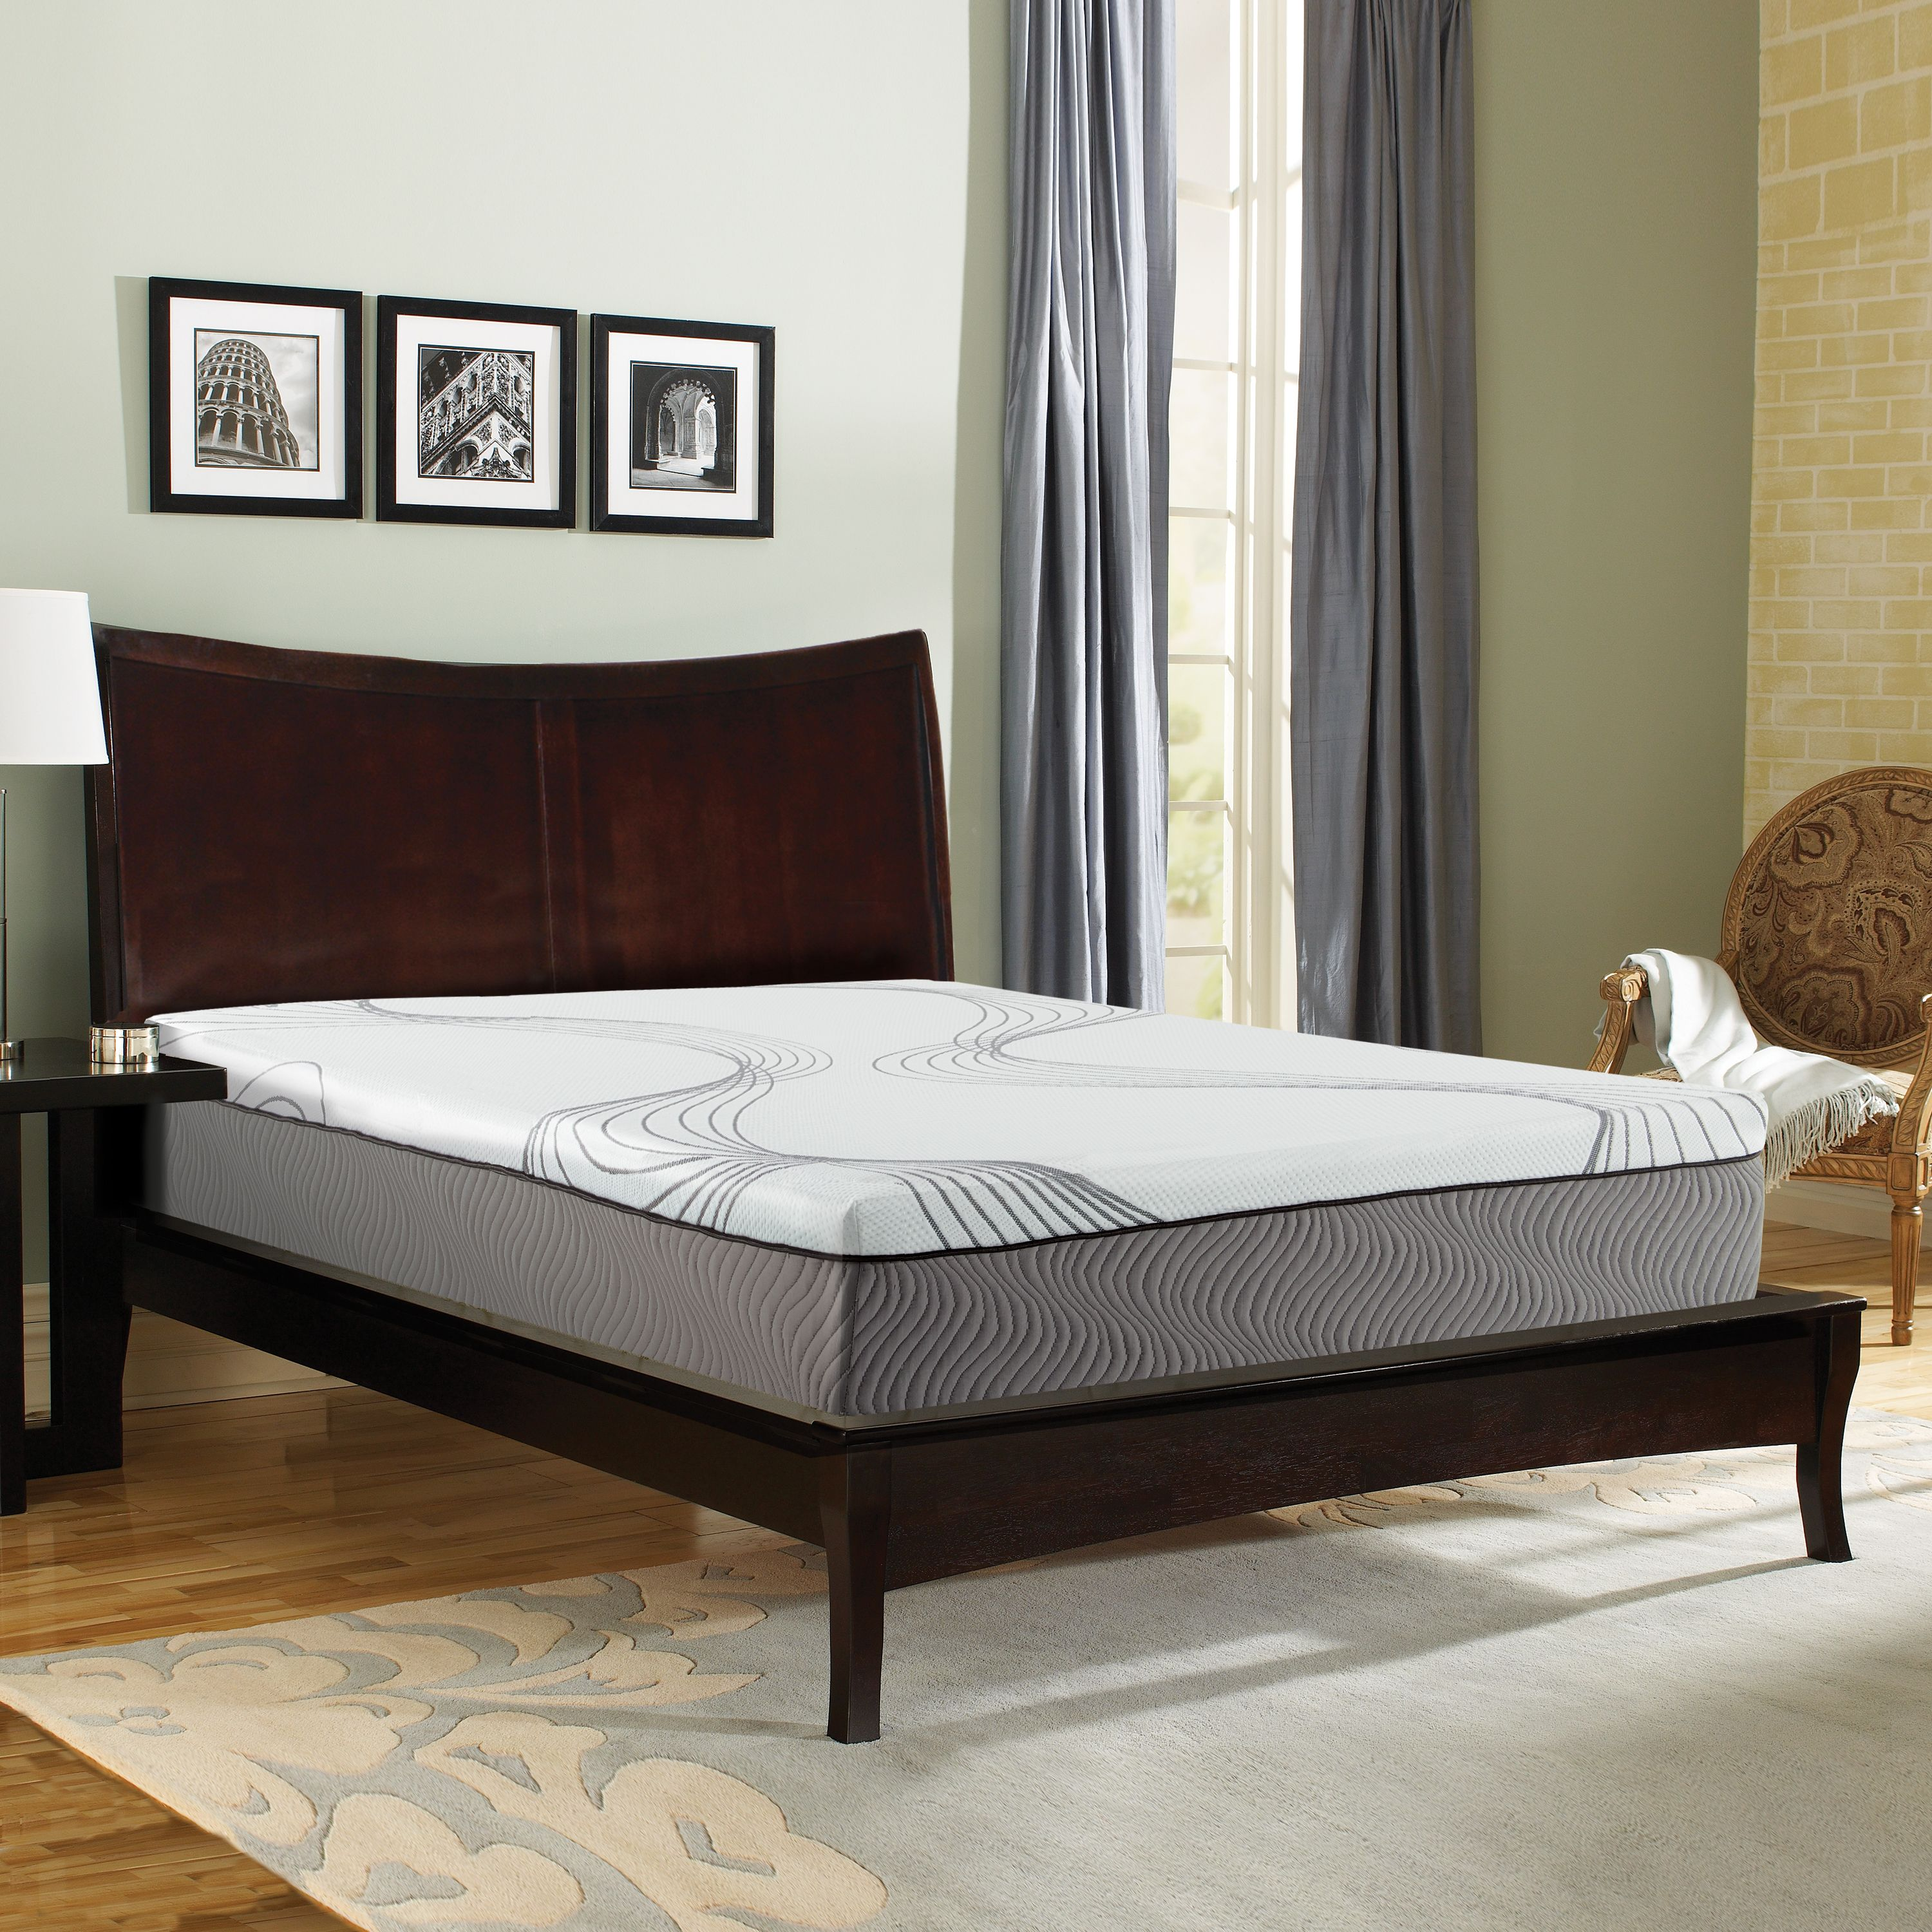 "Contura 2000 12""Medium Plush Engineered Latex Mattress Bed"